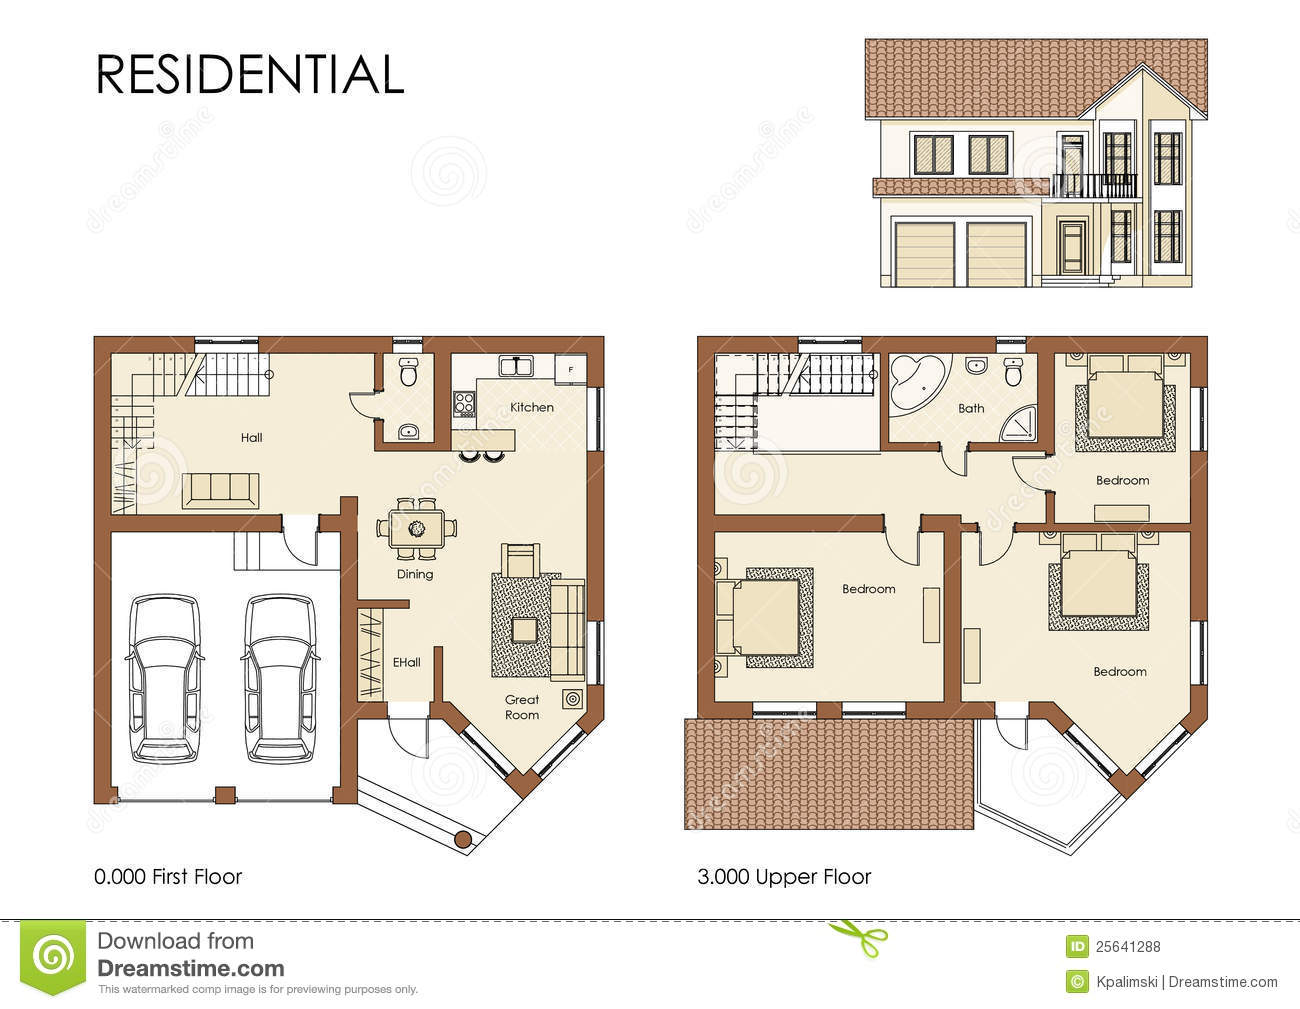 Residential house plan royalty free stock photos image for Residential floor plans